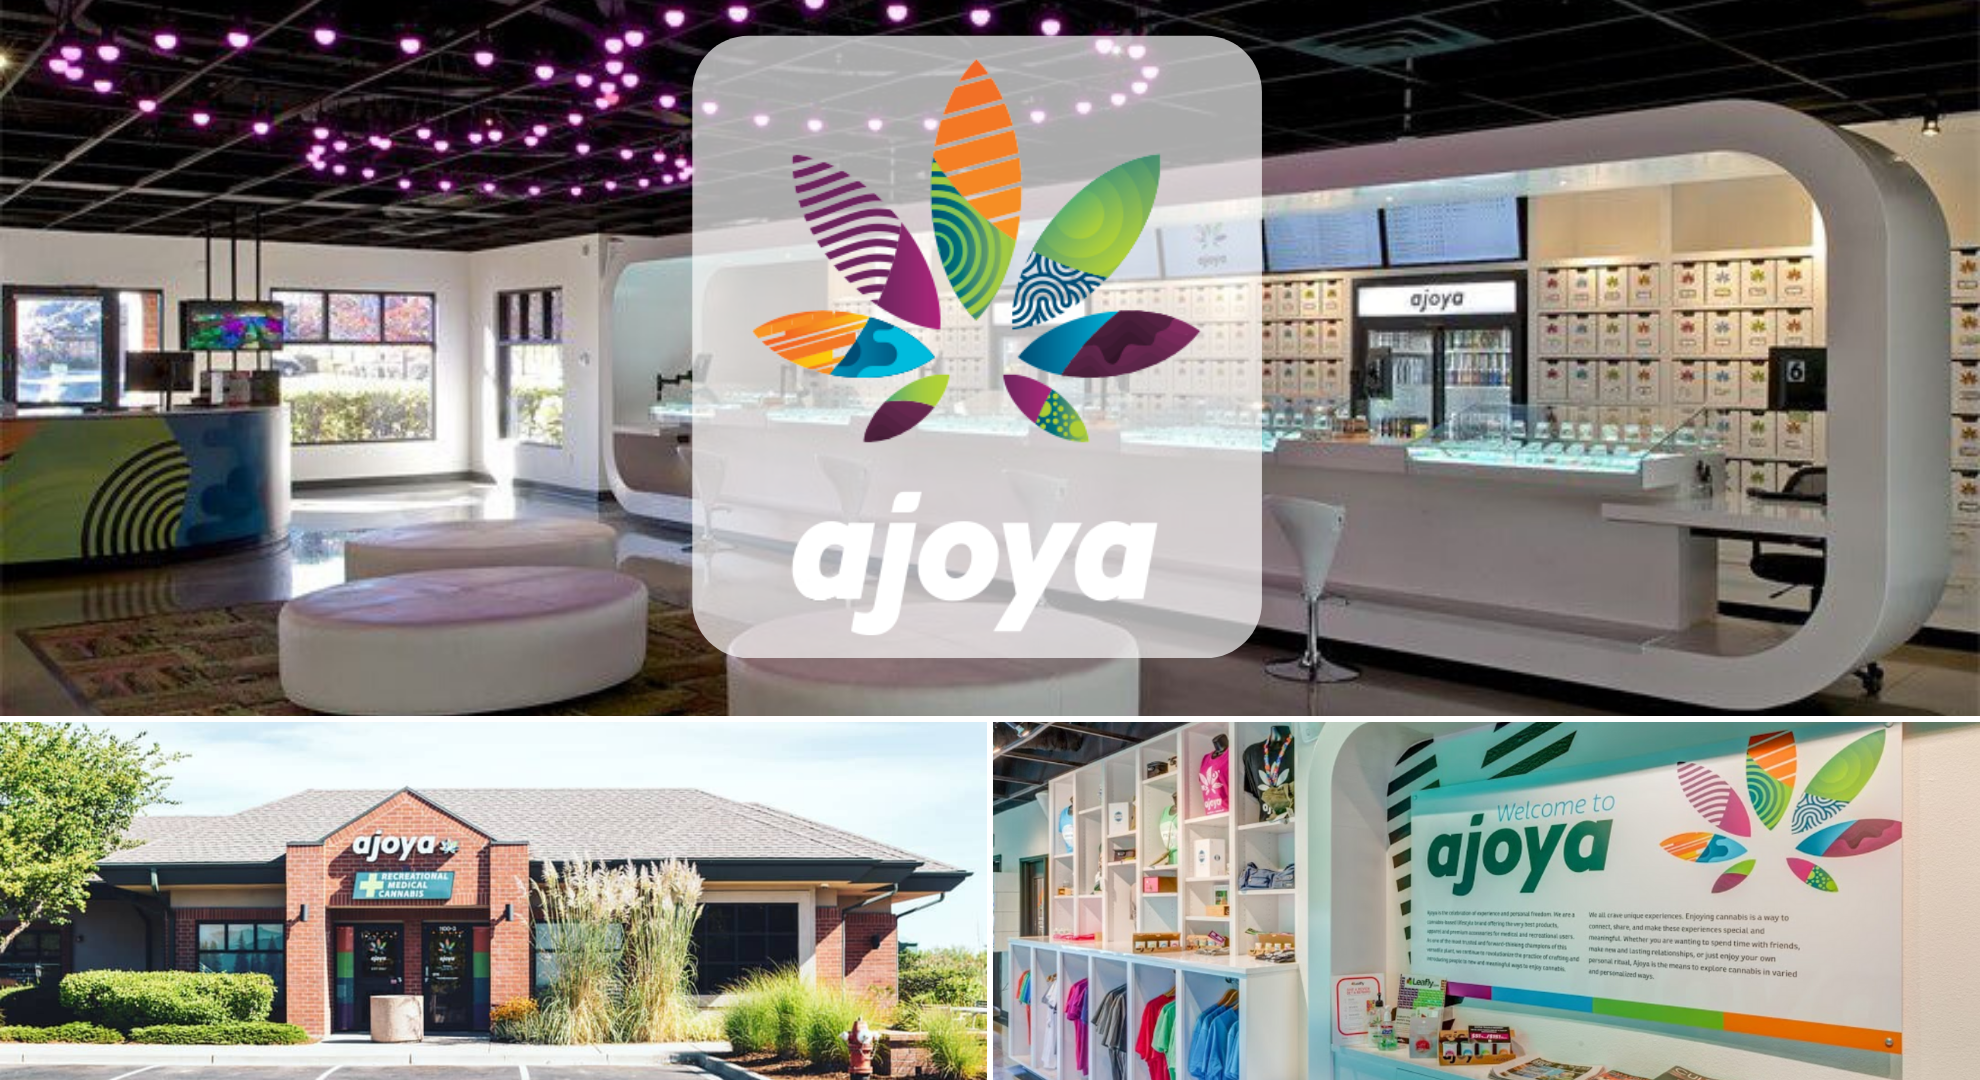 Ajoya dispensary